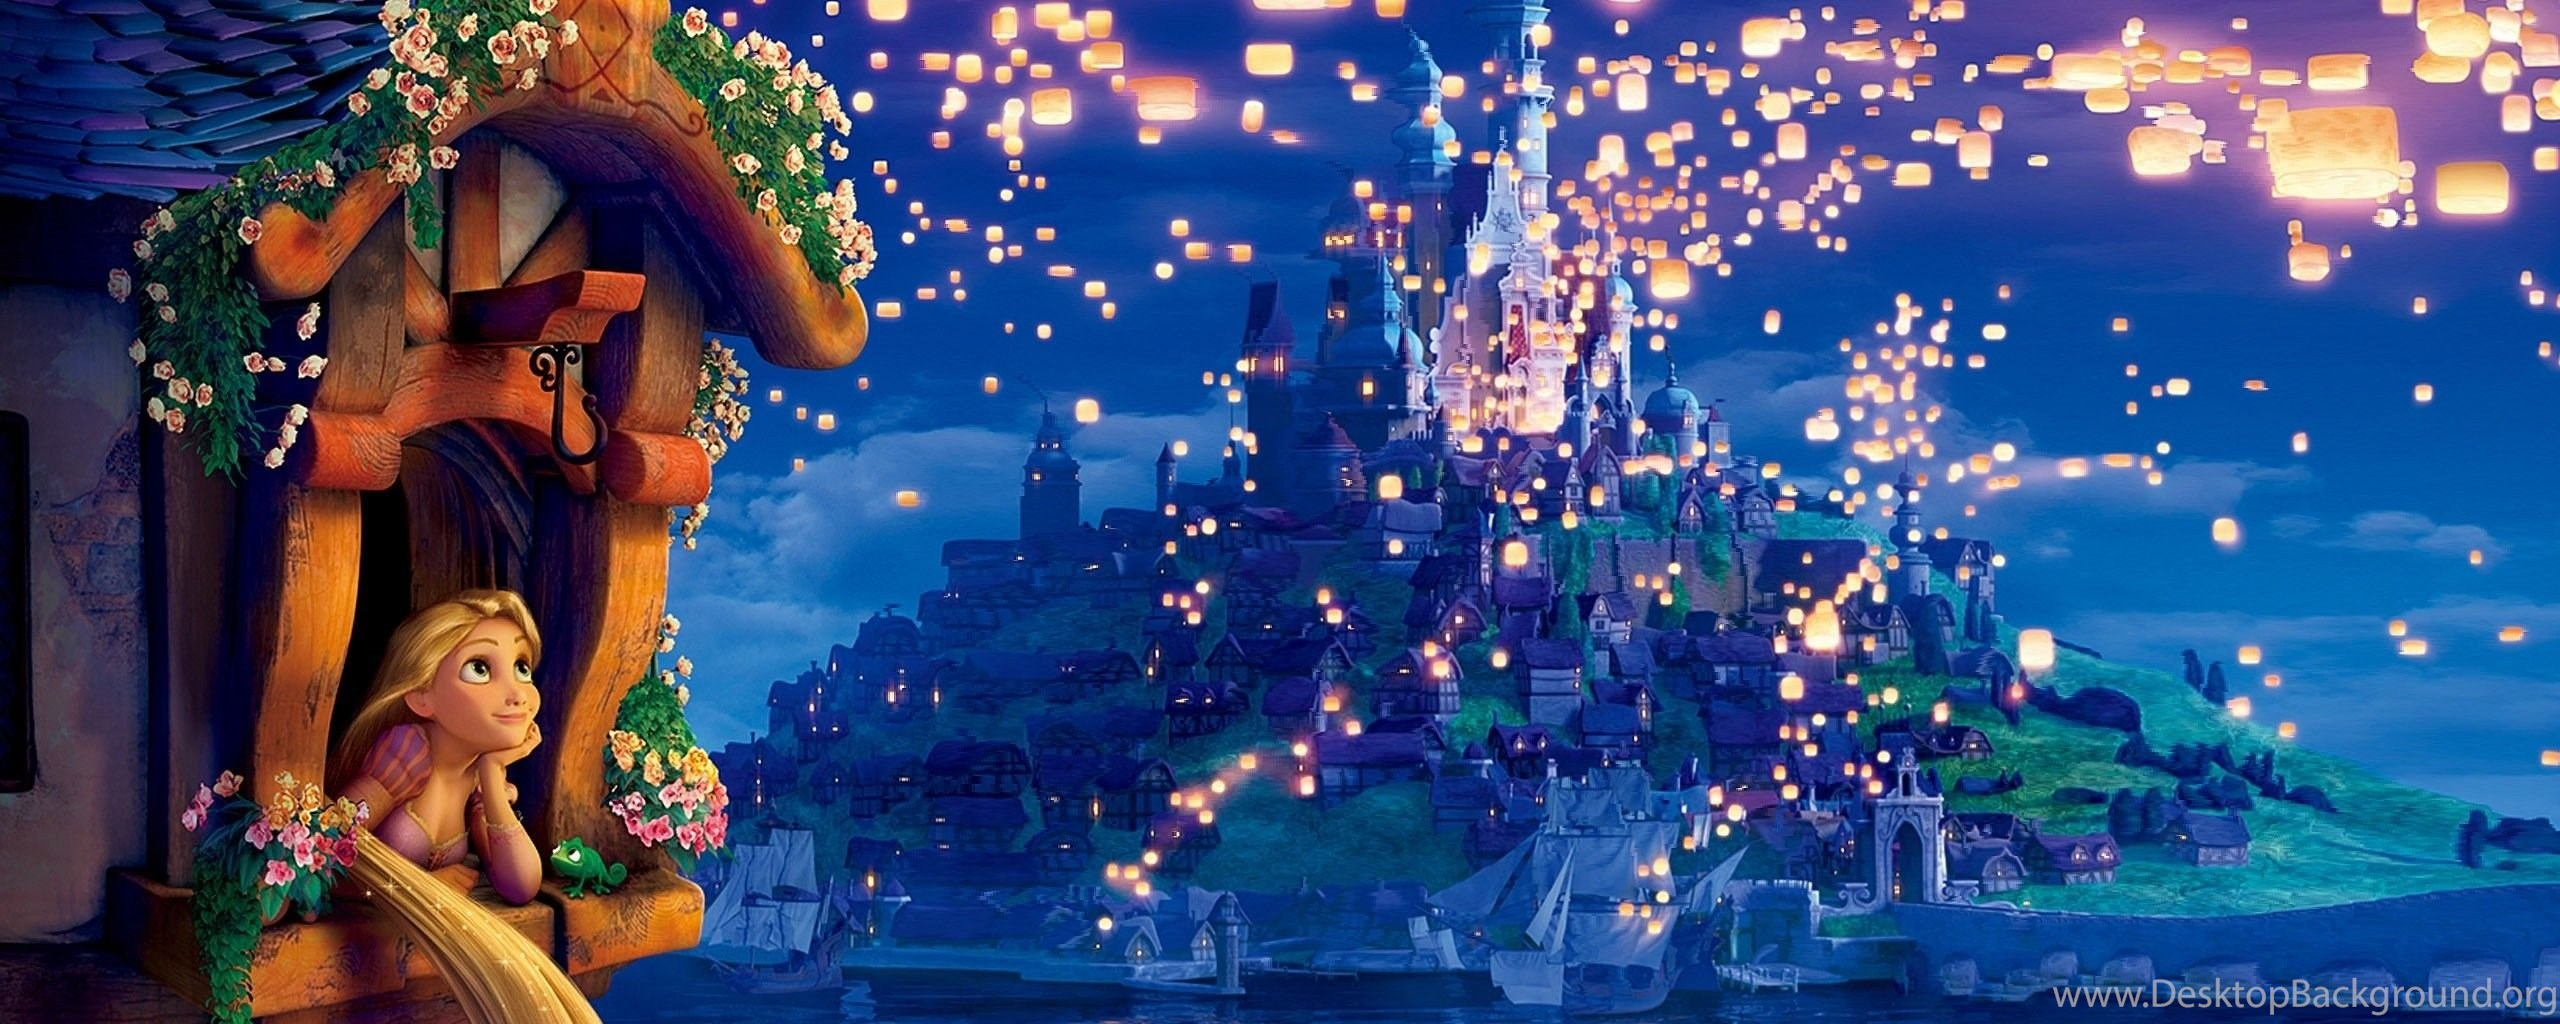 download wallpapers tangled, the movie, rapunzel, princess, dreams